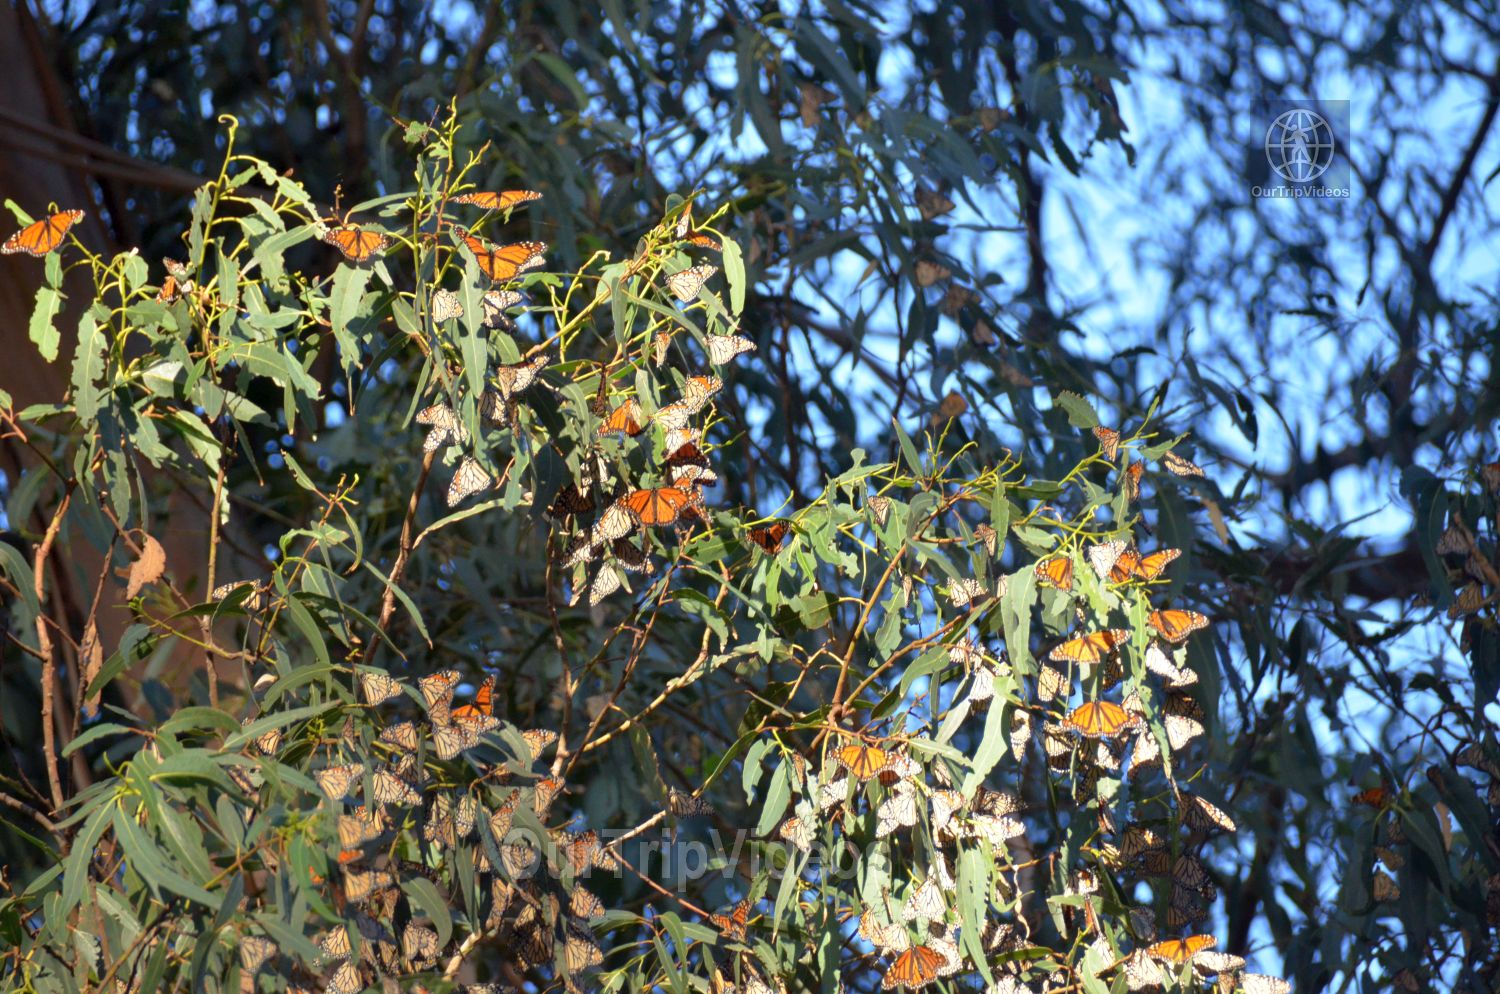 Monarch Butterfly Grove, Pismo Beach, CA, USA - Picture 13 of 25